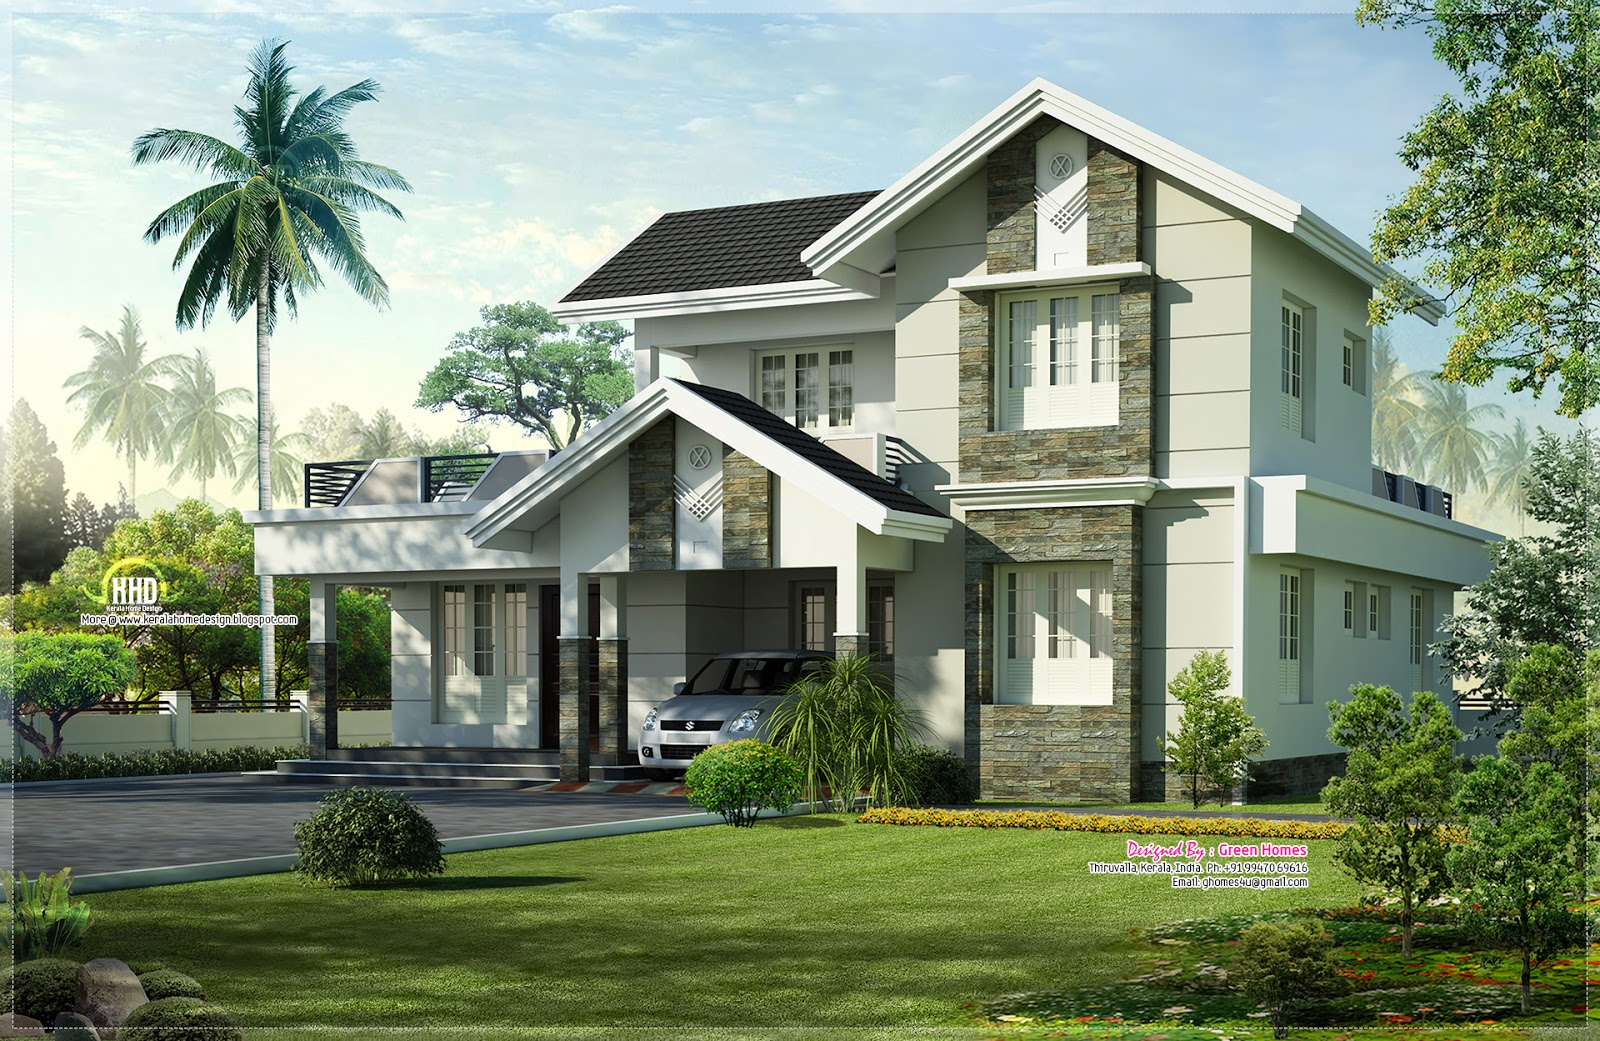 1975 nice home exterior design home kerala plans for Outside exterior design